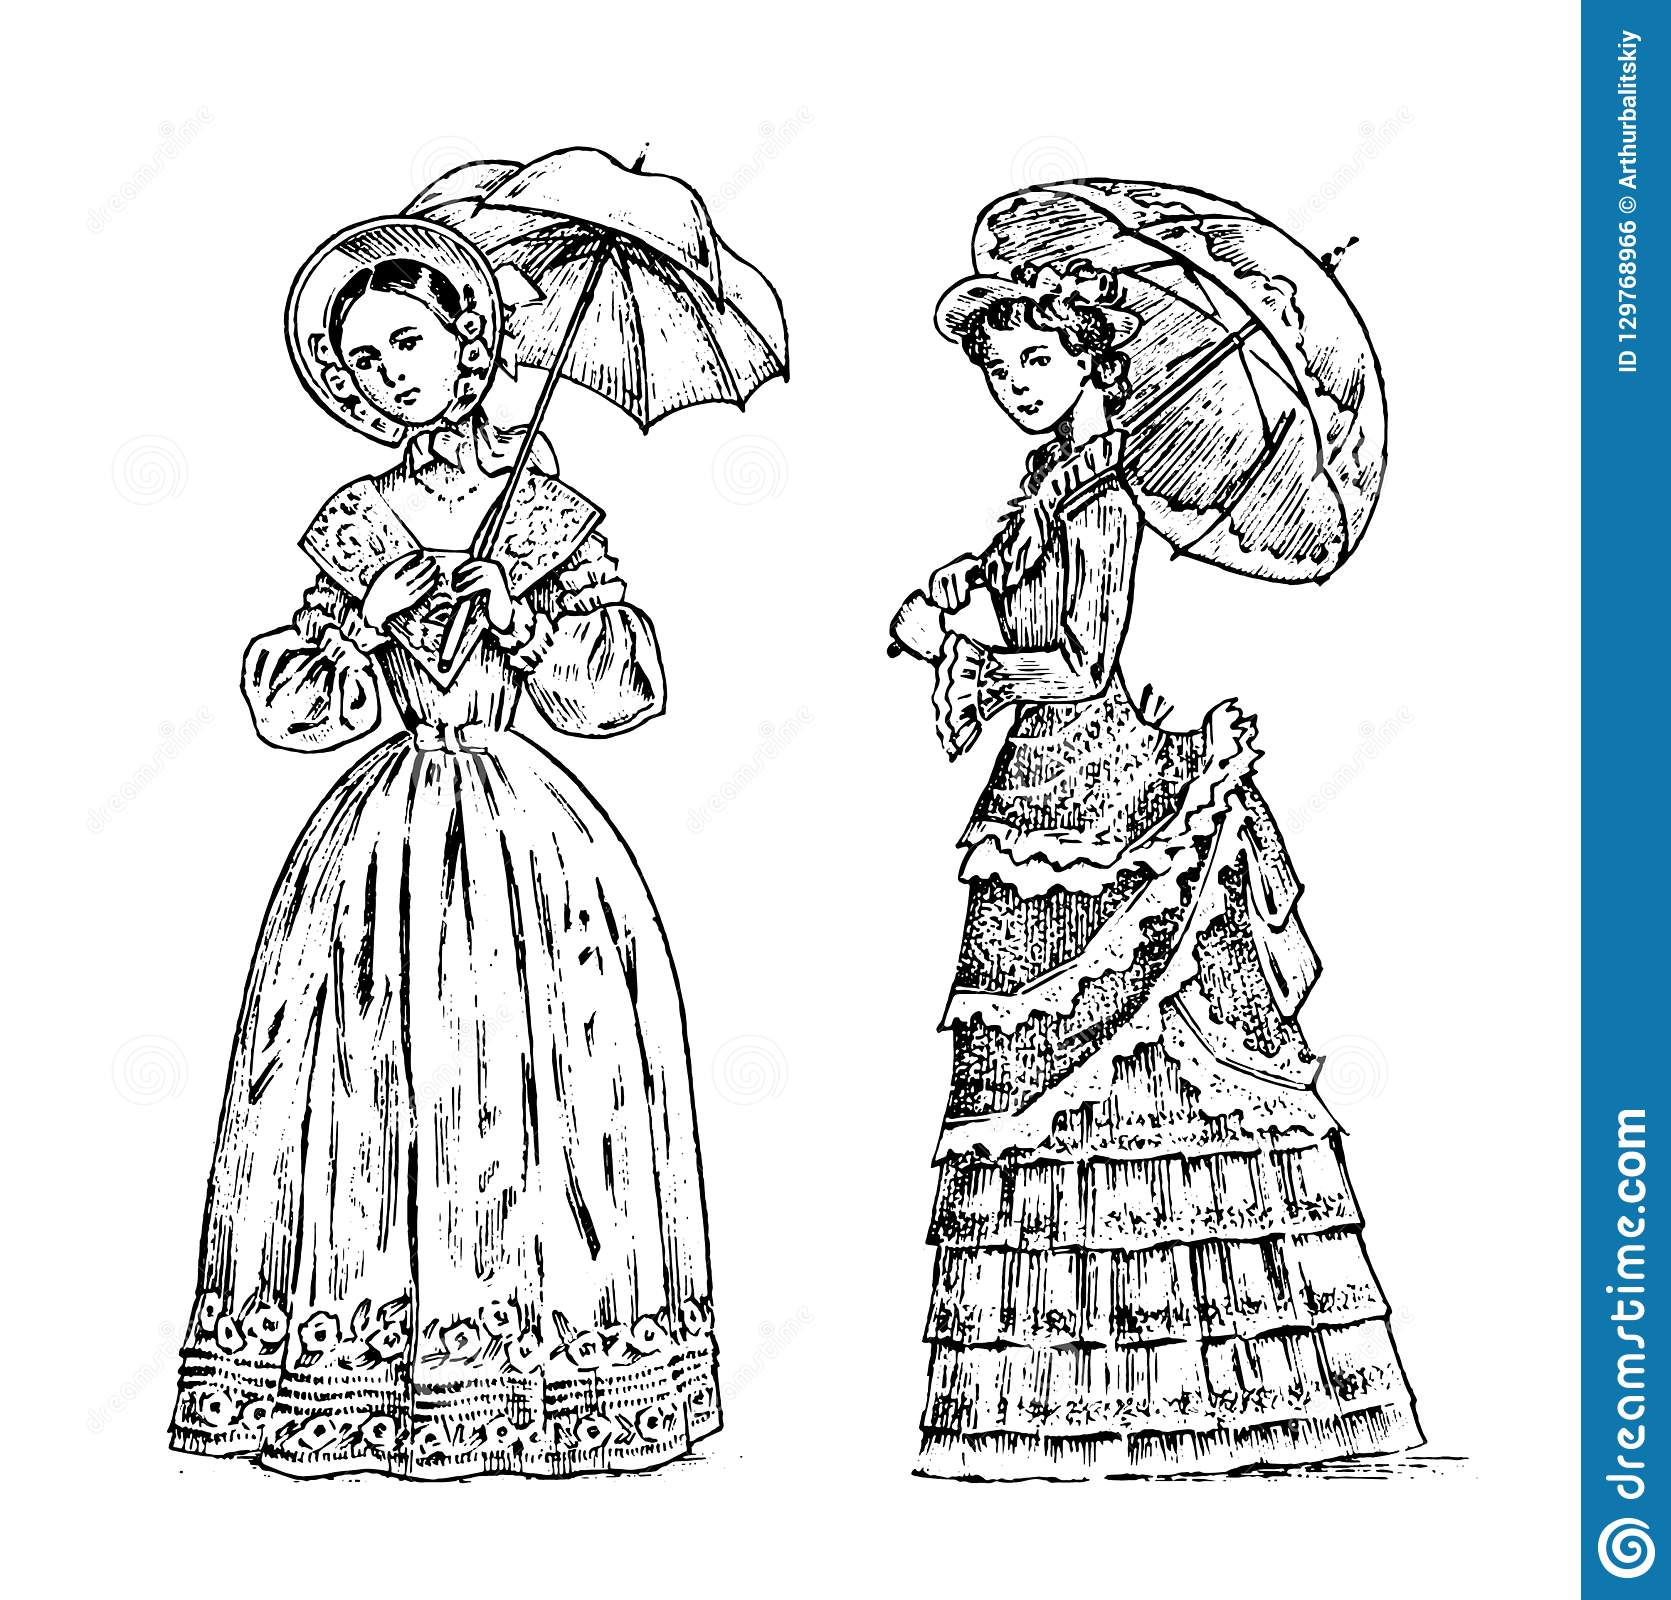 Antique ladies. Dame with umbrella. Victorian epoch. Ancient Retro Clothing. Women in Ball lace dress. Vintage engraving